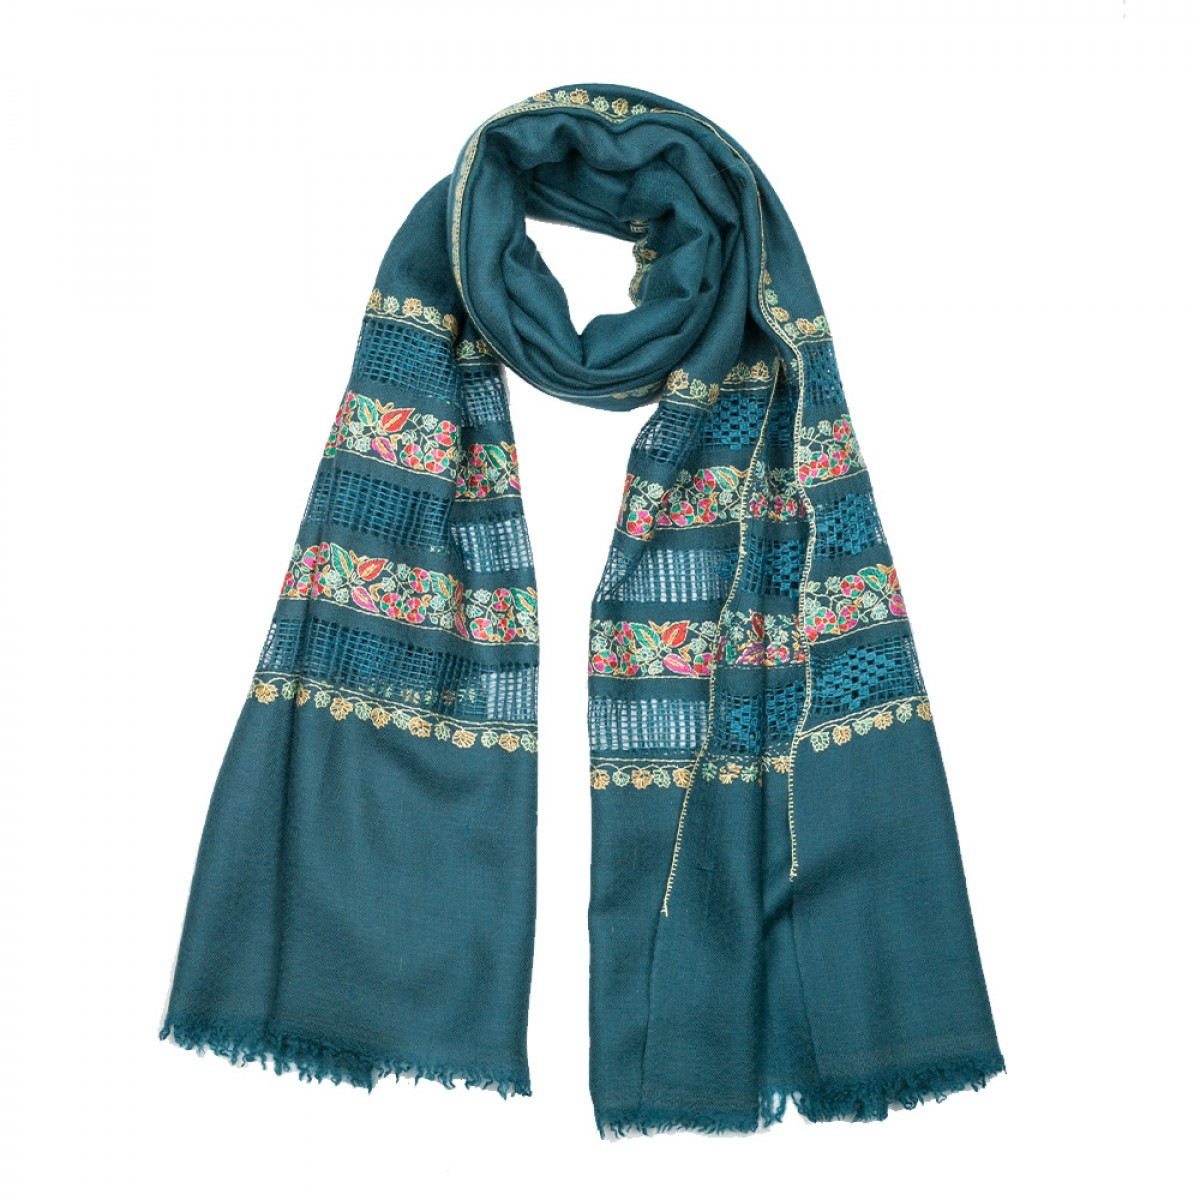 Embroidered Pashmina Stole - Pine Green